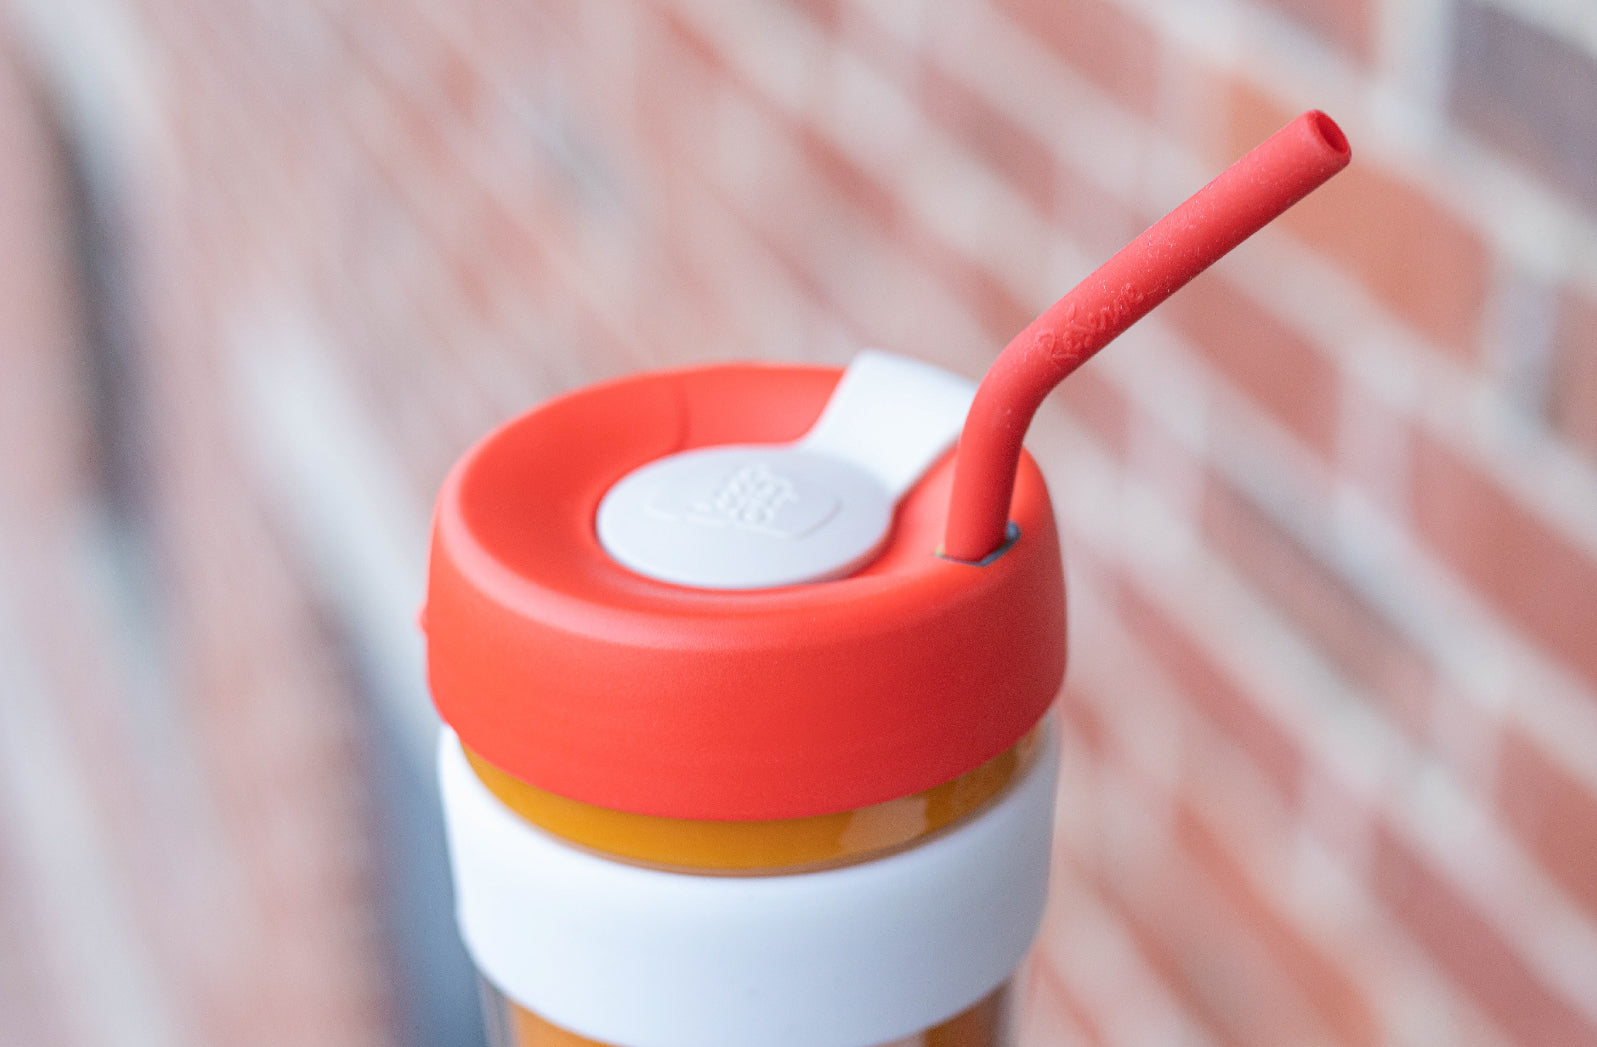 Christmas ReServe x KeepCup with Limited-edition ReServe red silicone drinking reusable straw